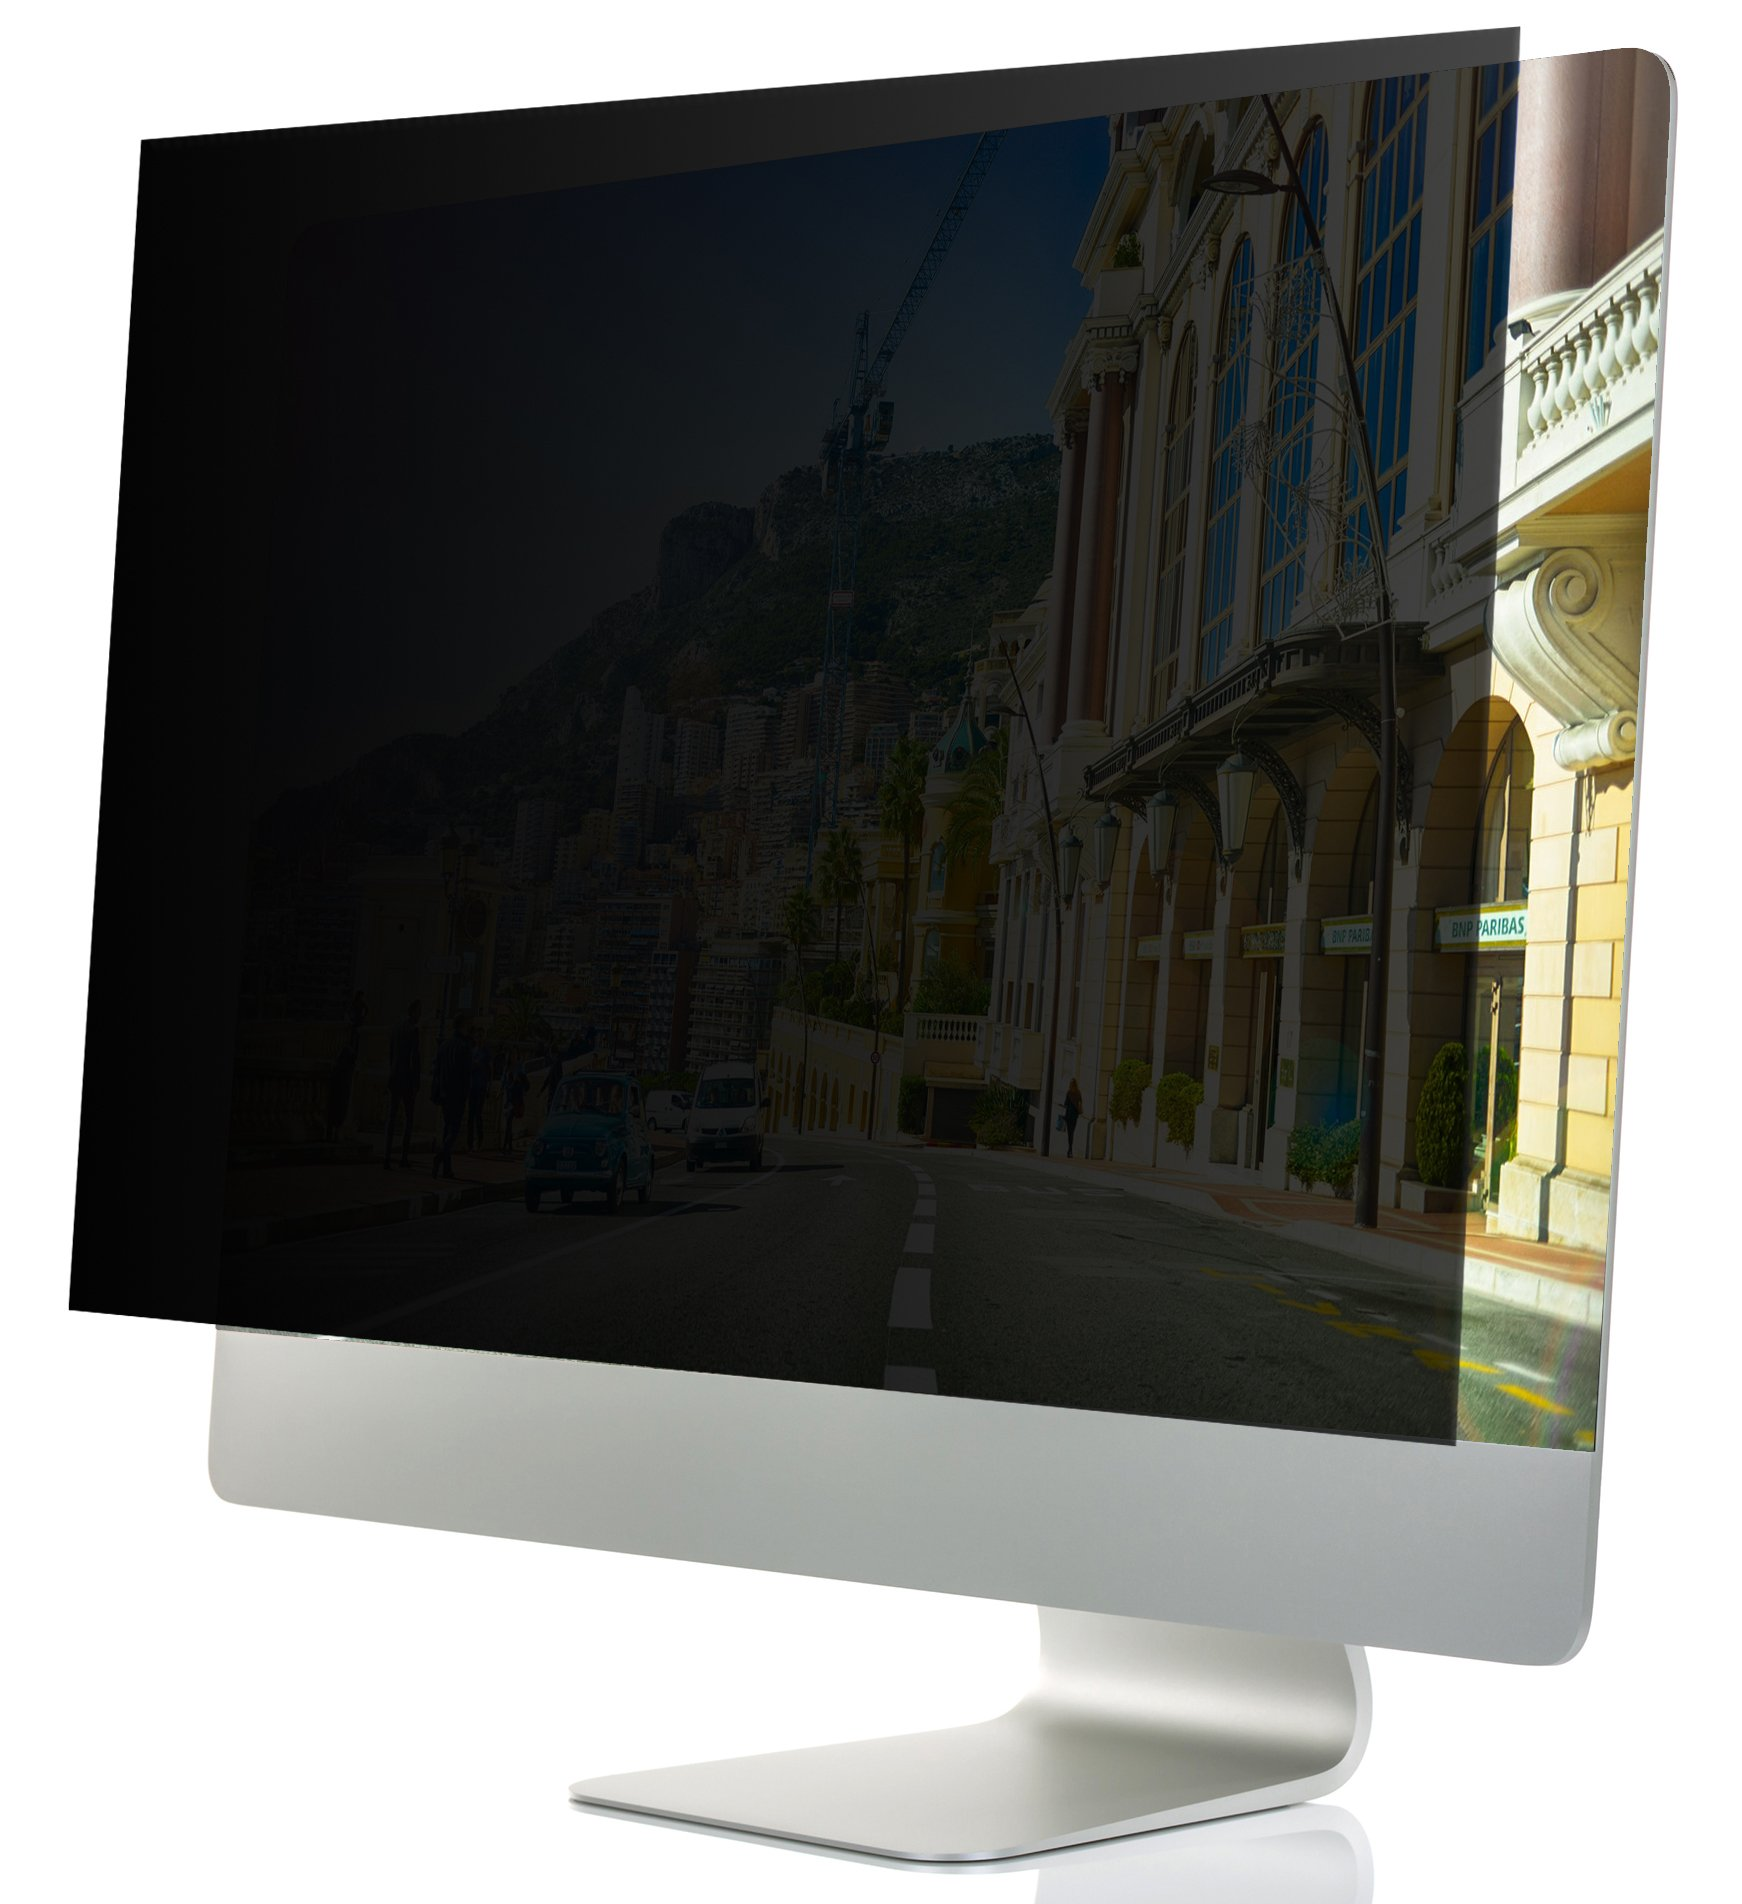 22-Inch Computer Privacy Screen Filter for Desktop Monitors (Diagonally-Measured); Anti-glare Anti-scratch Film; Protects Sensitive Confidential Data (22'' Widescreen (16:10 Aspect Ratio))